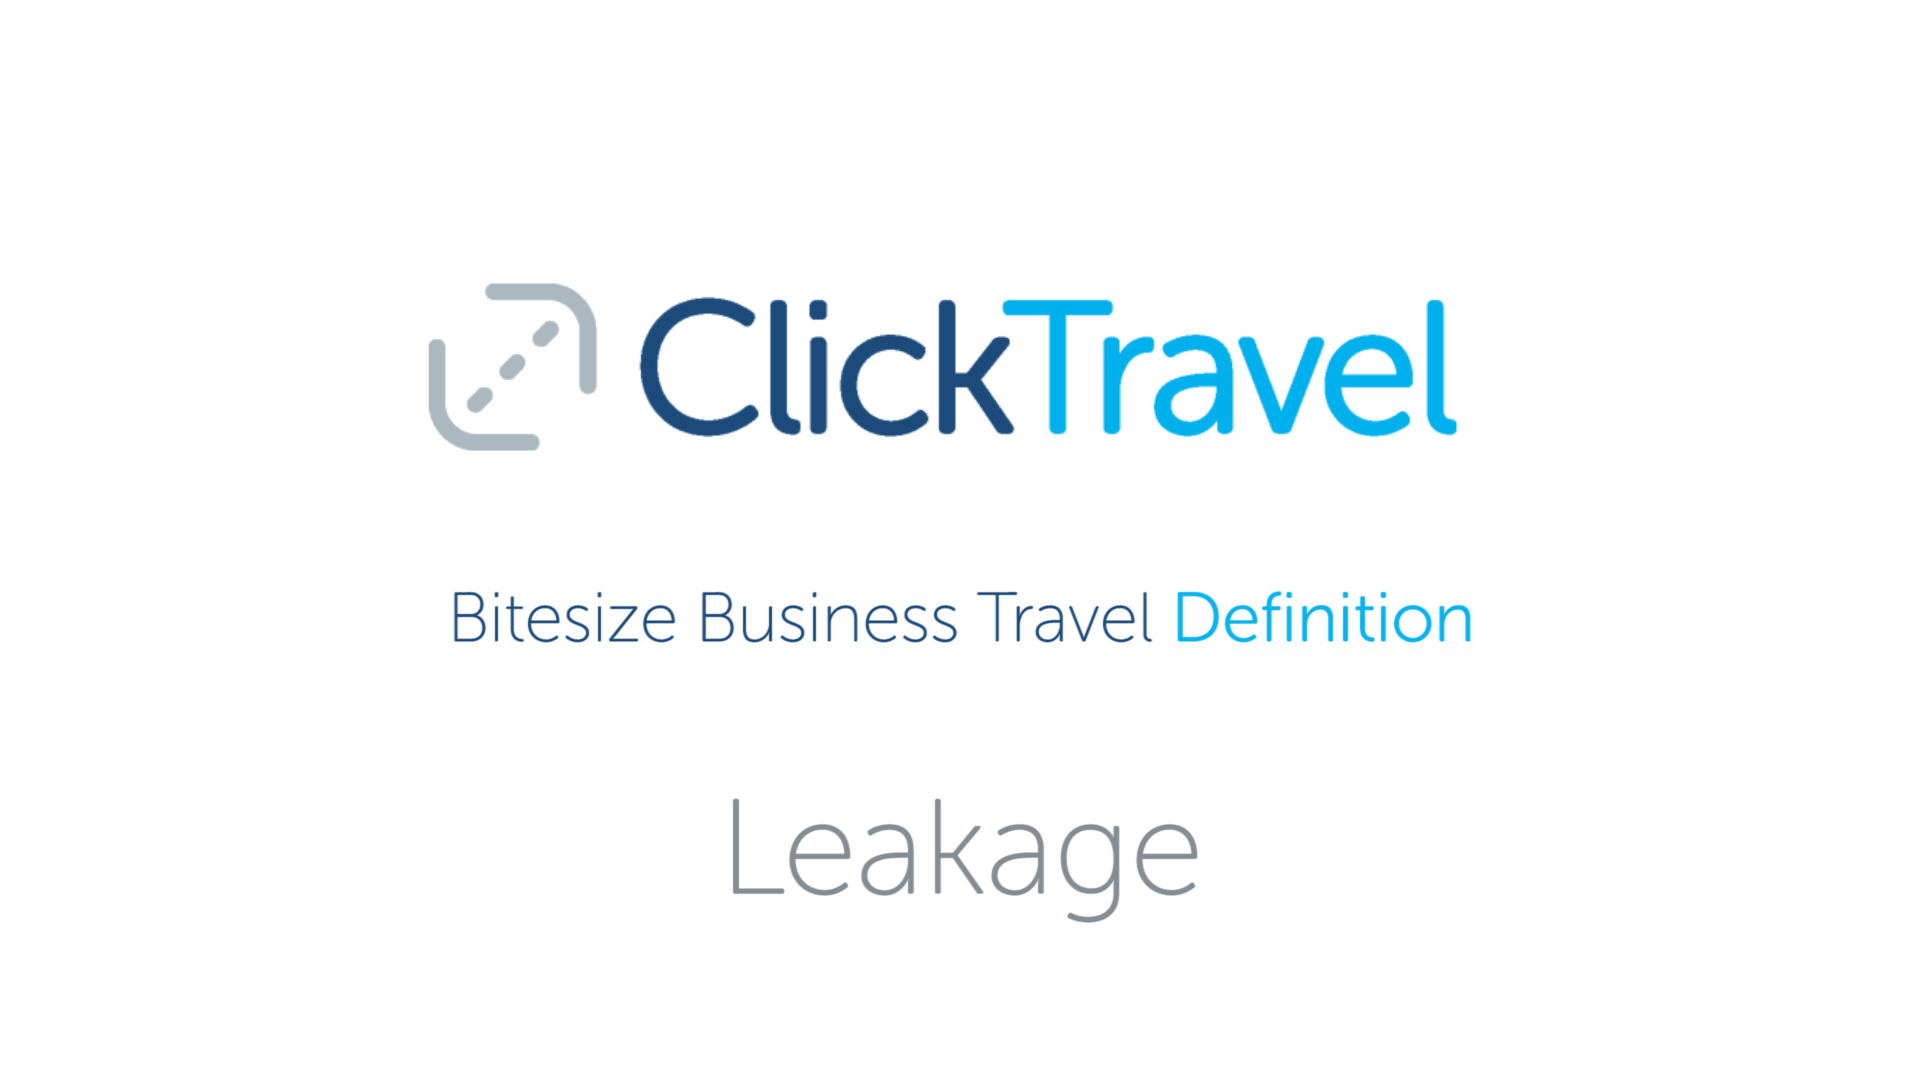 [VIDEO] Bitesize Business Travel Definition : Leakage